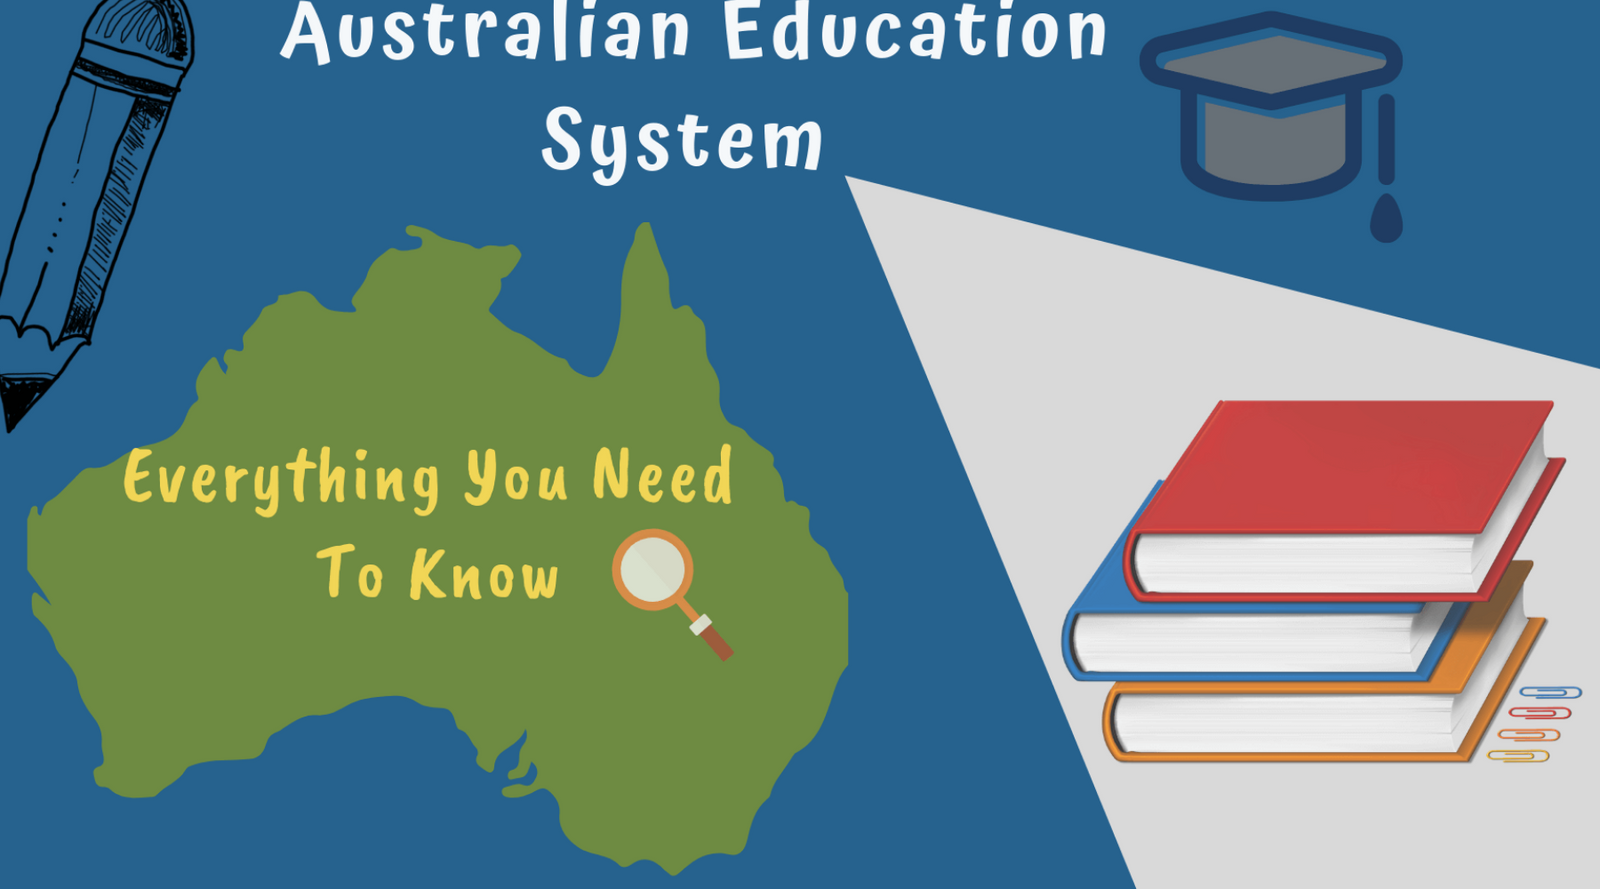 UPDATED List of Australian Education Blogs and Sites For